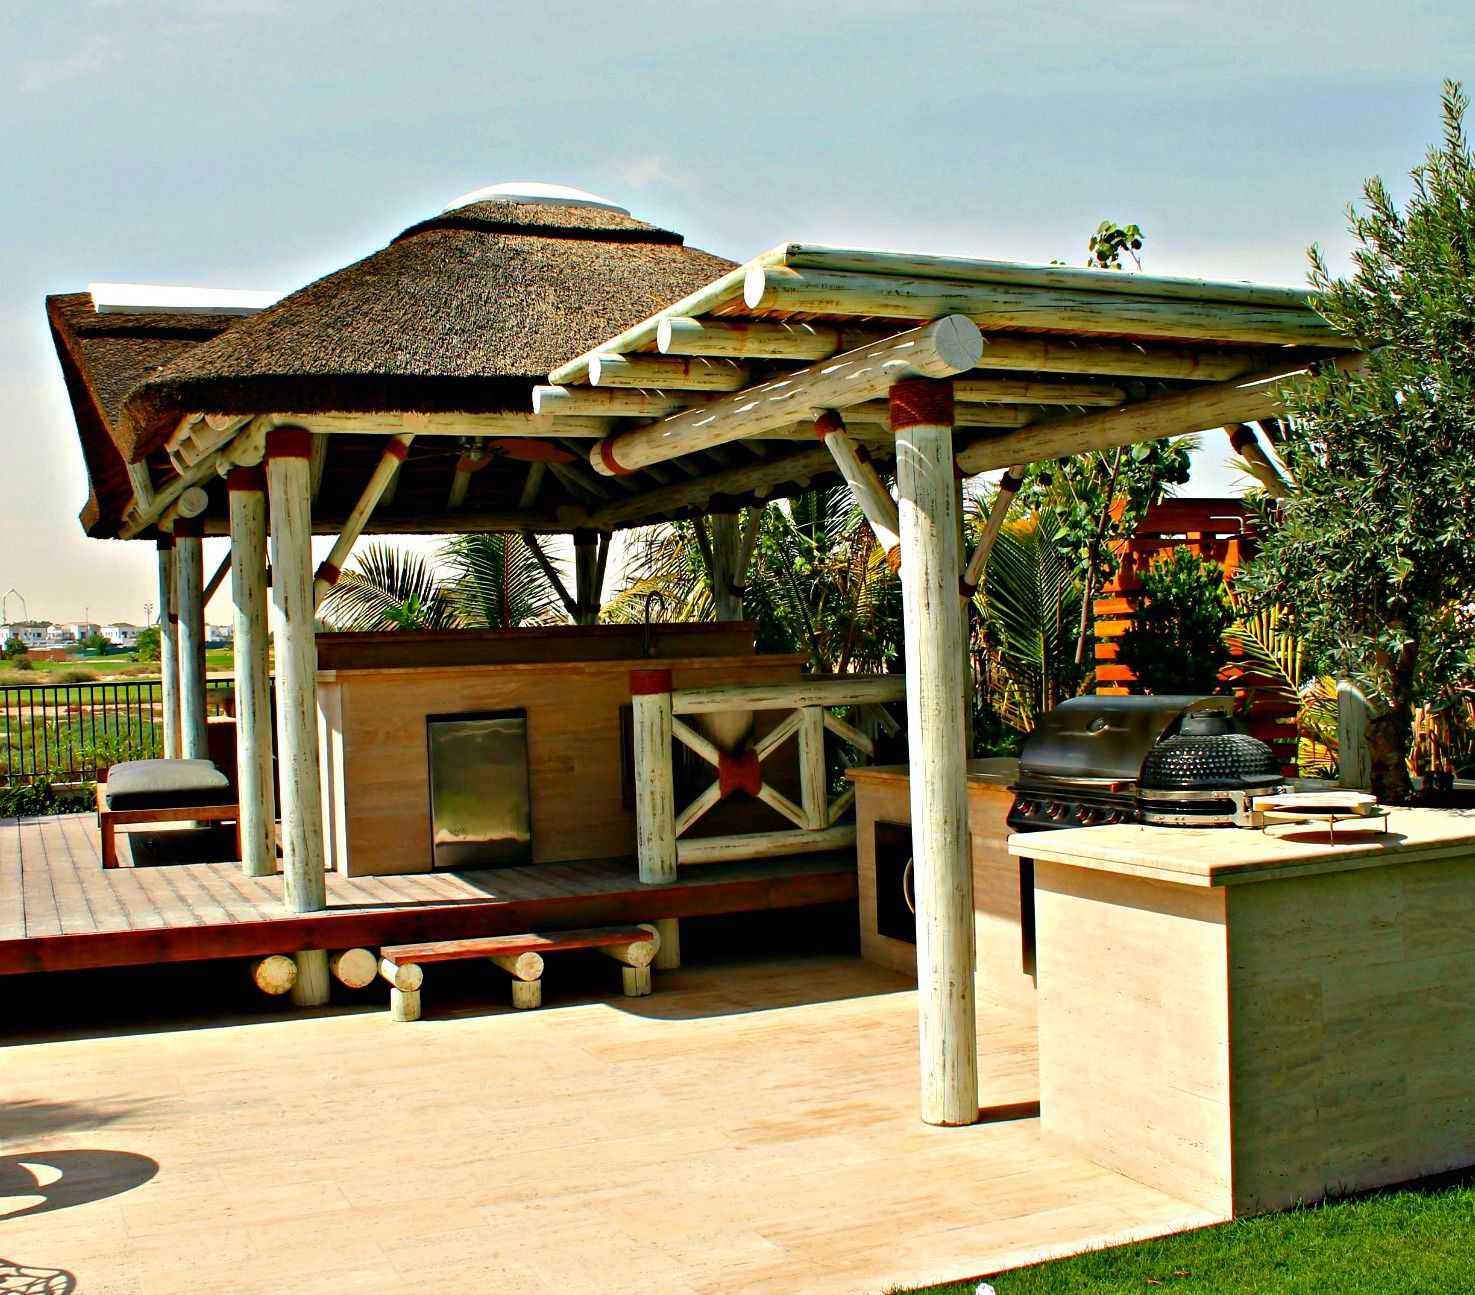 Outdoor Kitchen With Thatched Gazebo Outdoor In 2019: Modern Thatched Gazebo With Pergola, Outdoor Kitchen And